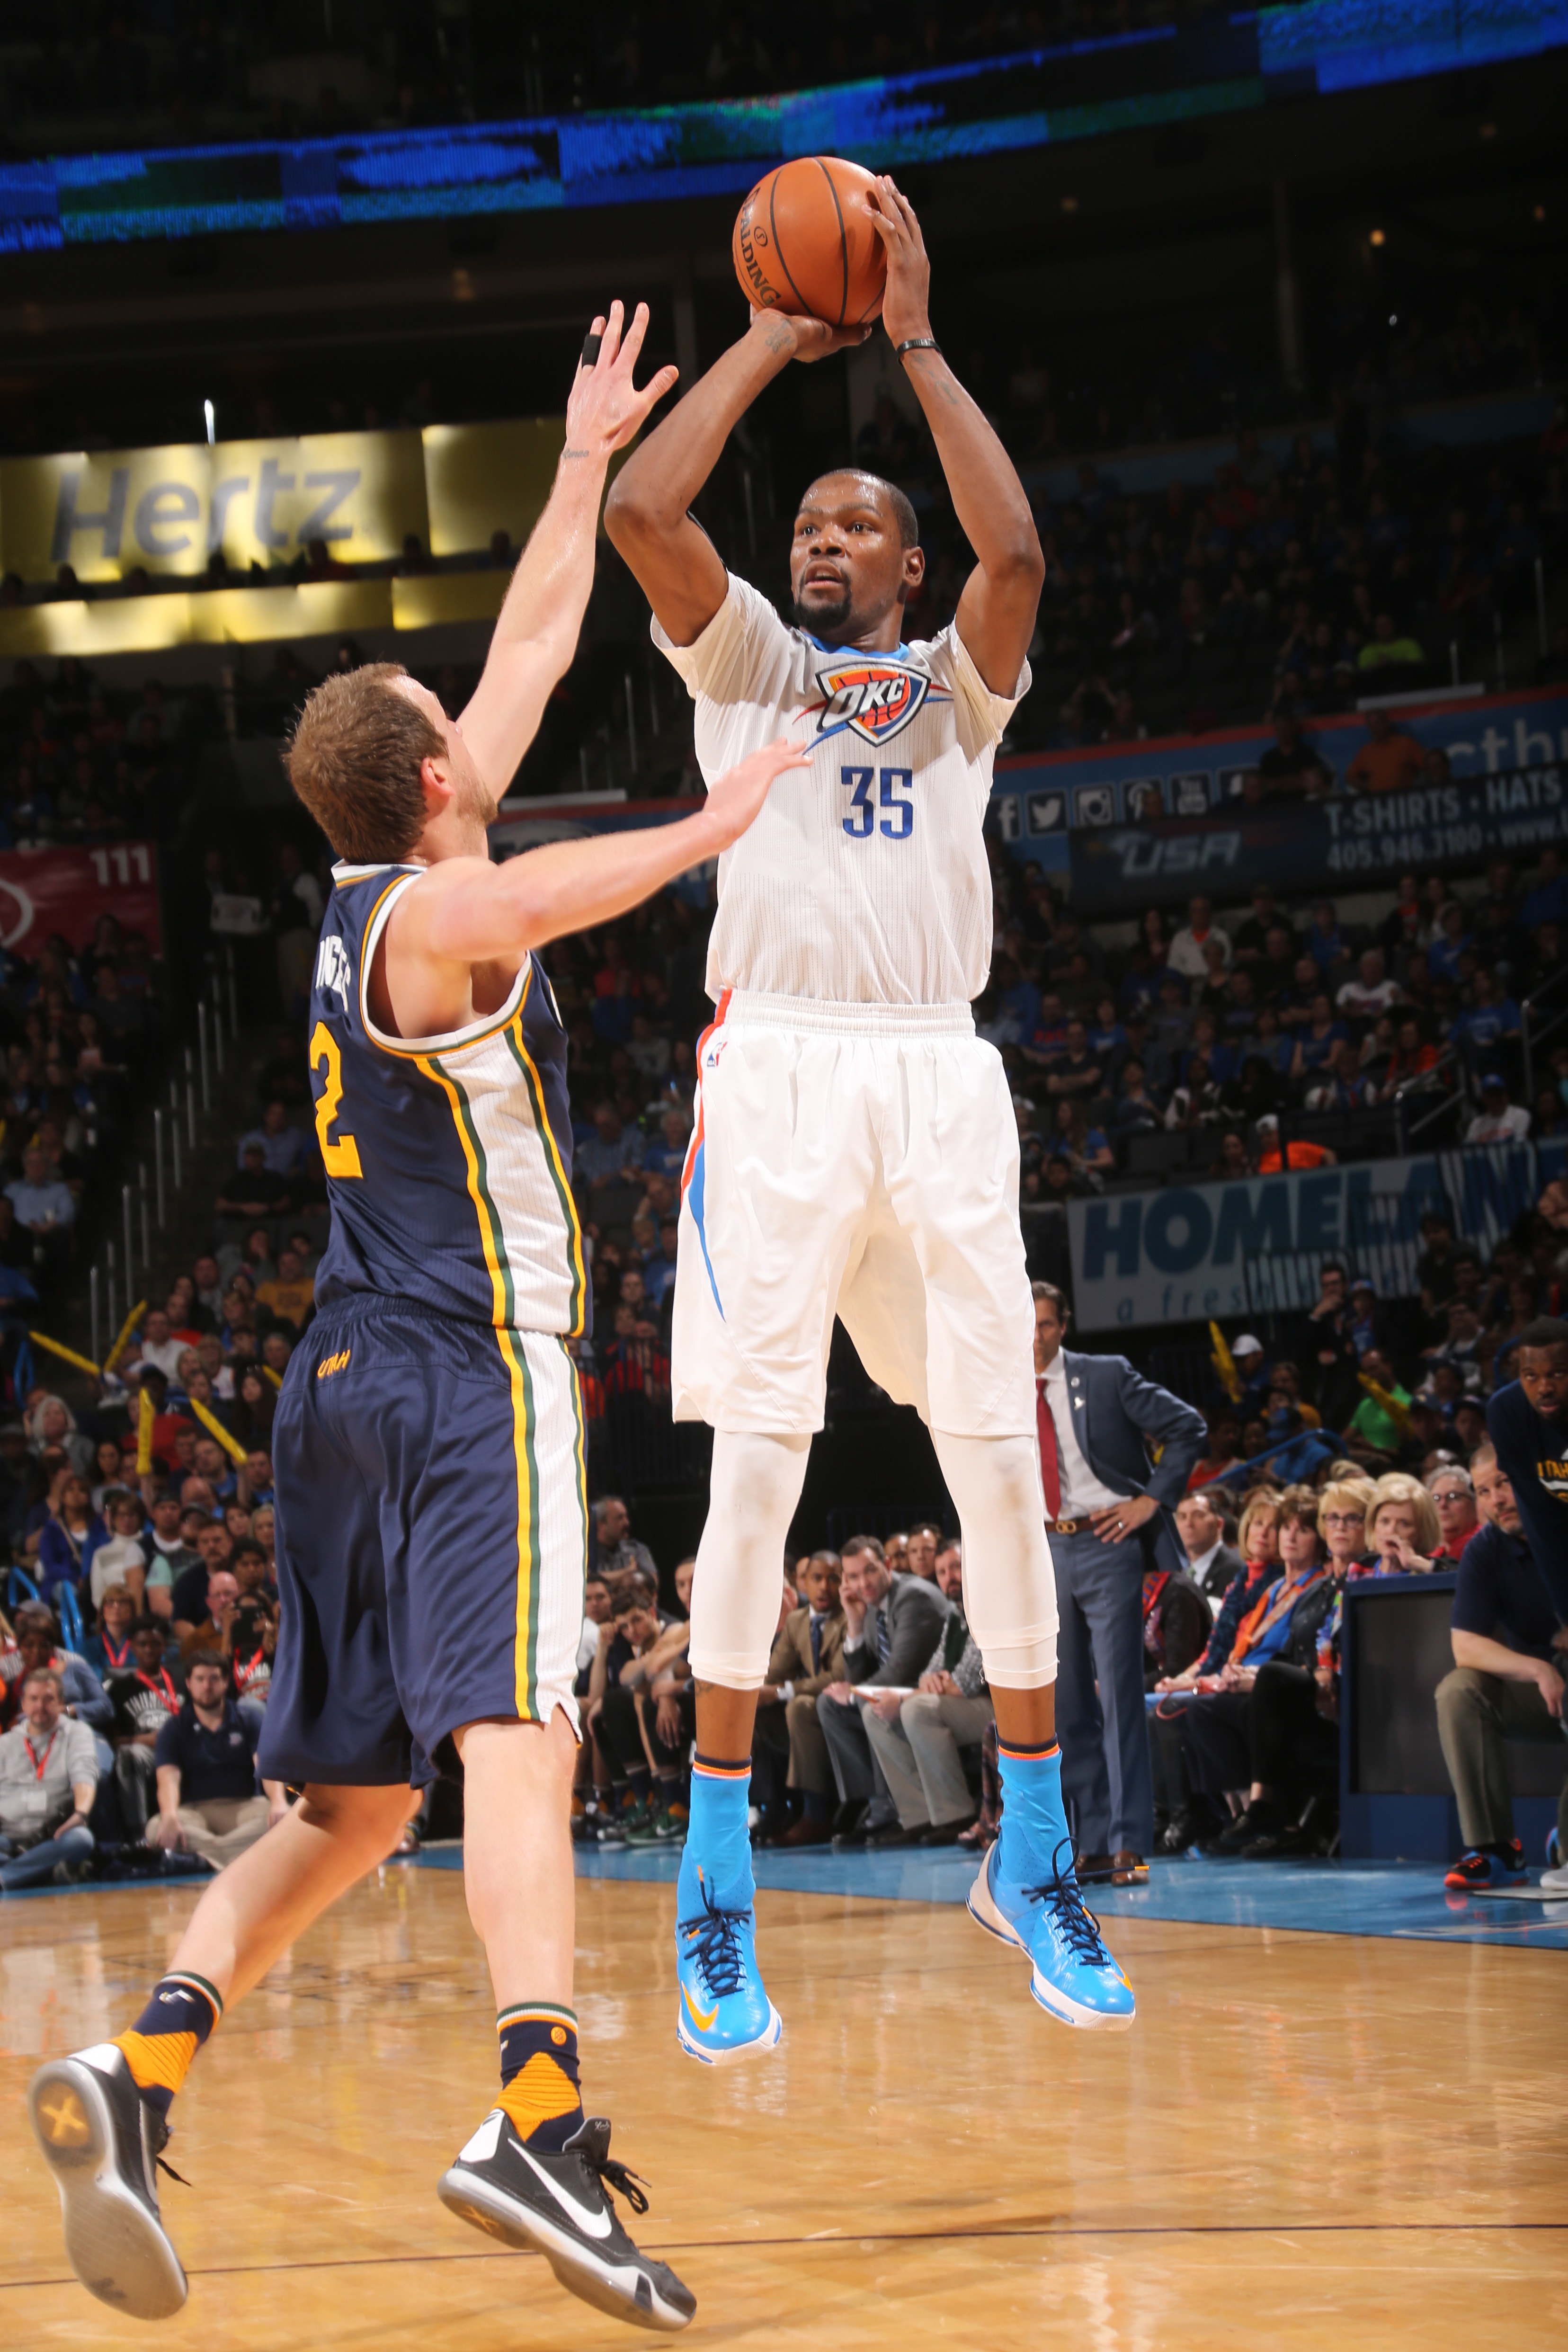 OKLAHOMA CITY, OK  - MARCH 24: Kevin Durant #35 of the Oklahoma City Thunder shoots against the Utah Jazz during the game on March 24, 2016 at Chesapeake Energy Arena in Oklahoma City, Oklahoma. (Photo by Layne Murdoch/NBAE via Getty Images)